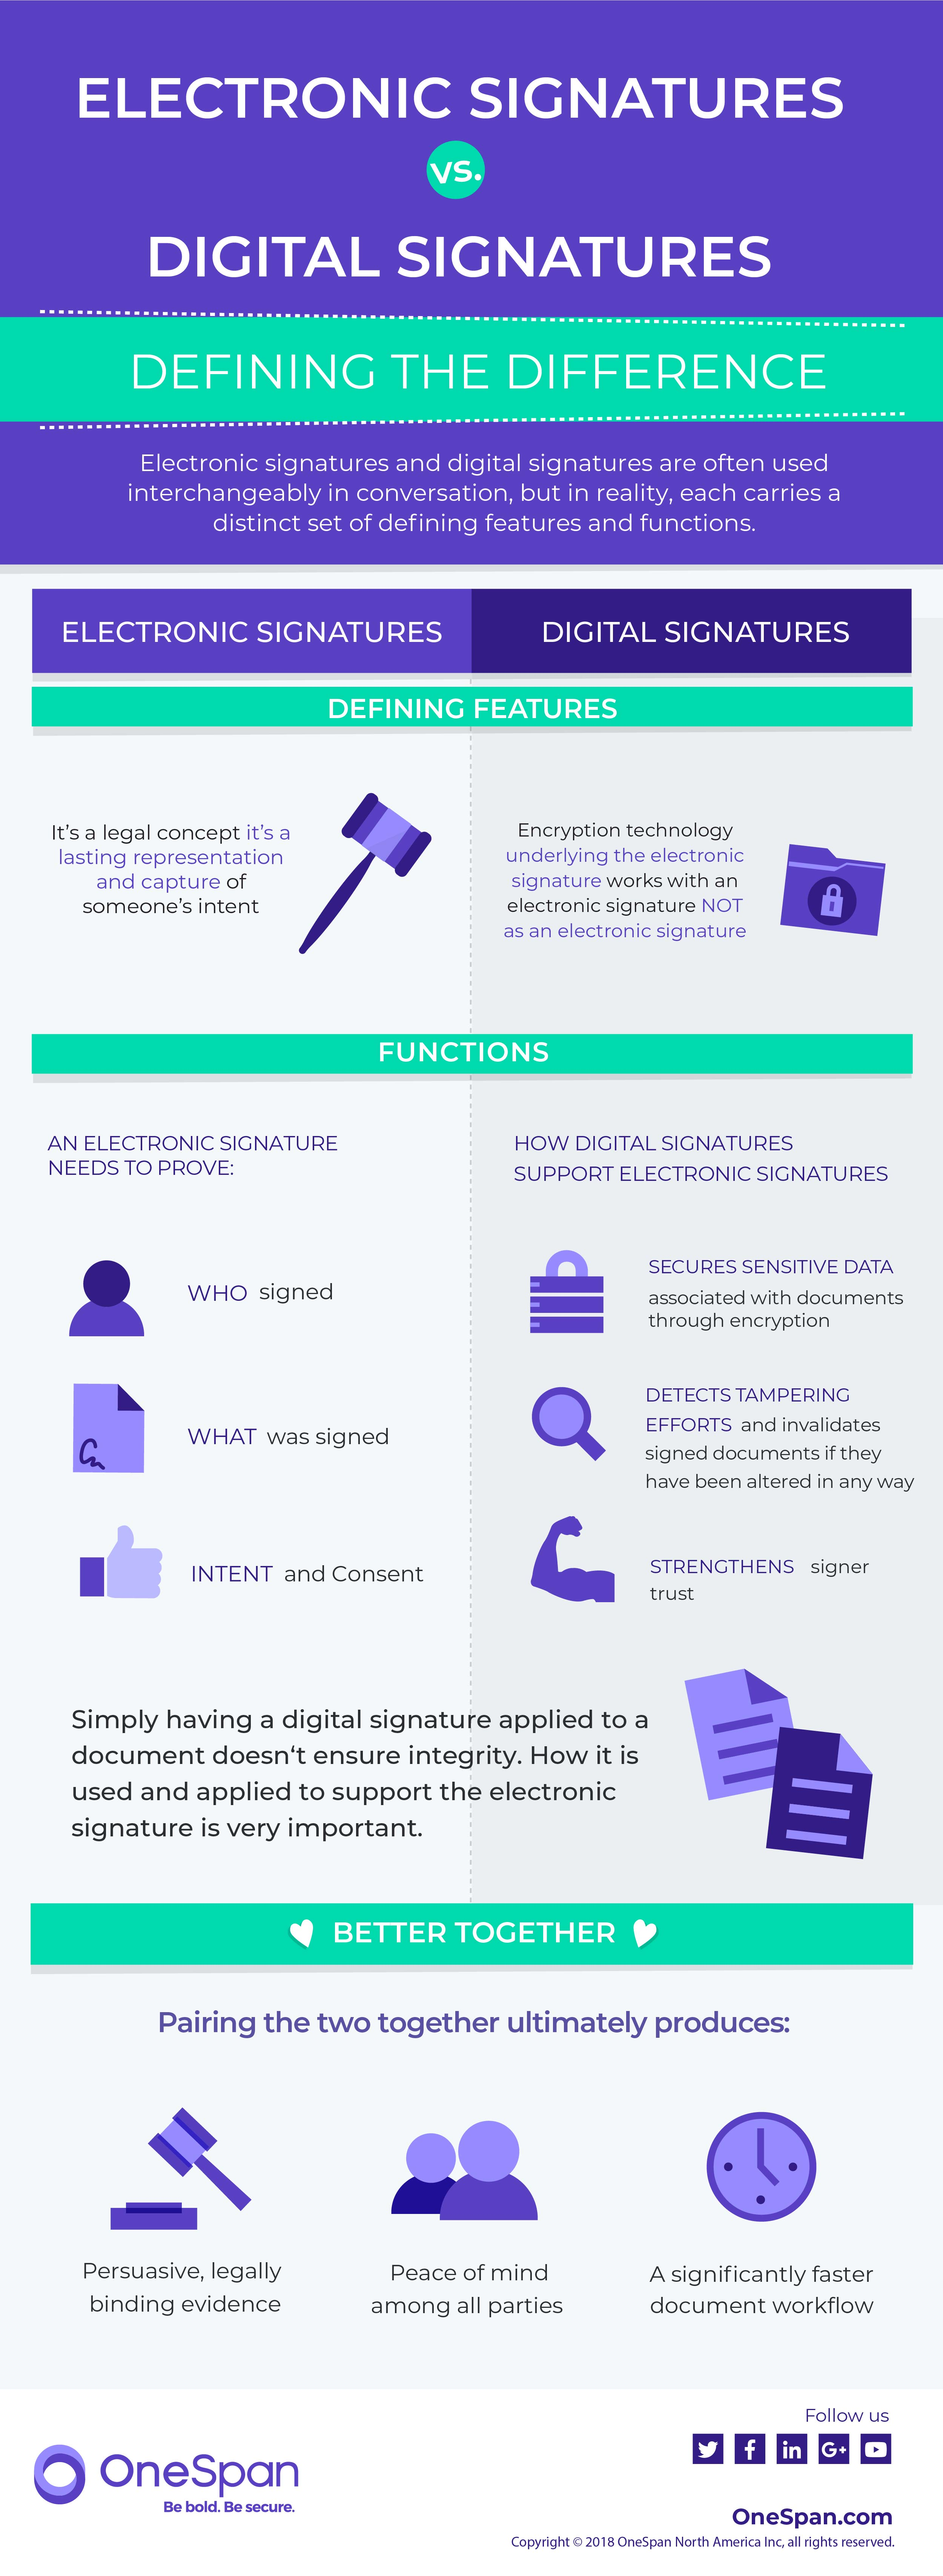 Electronic Signatures Vs. Digital Signatures – Defining the Difference